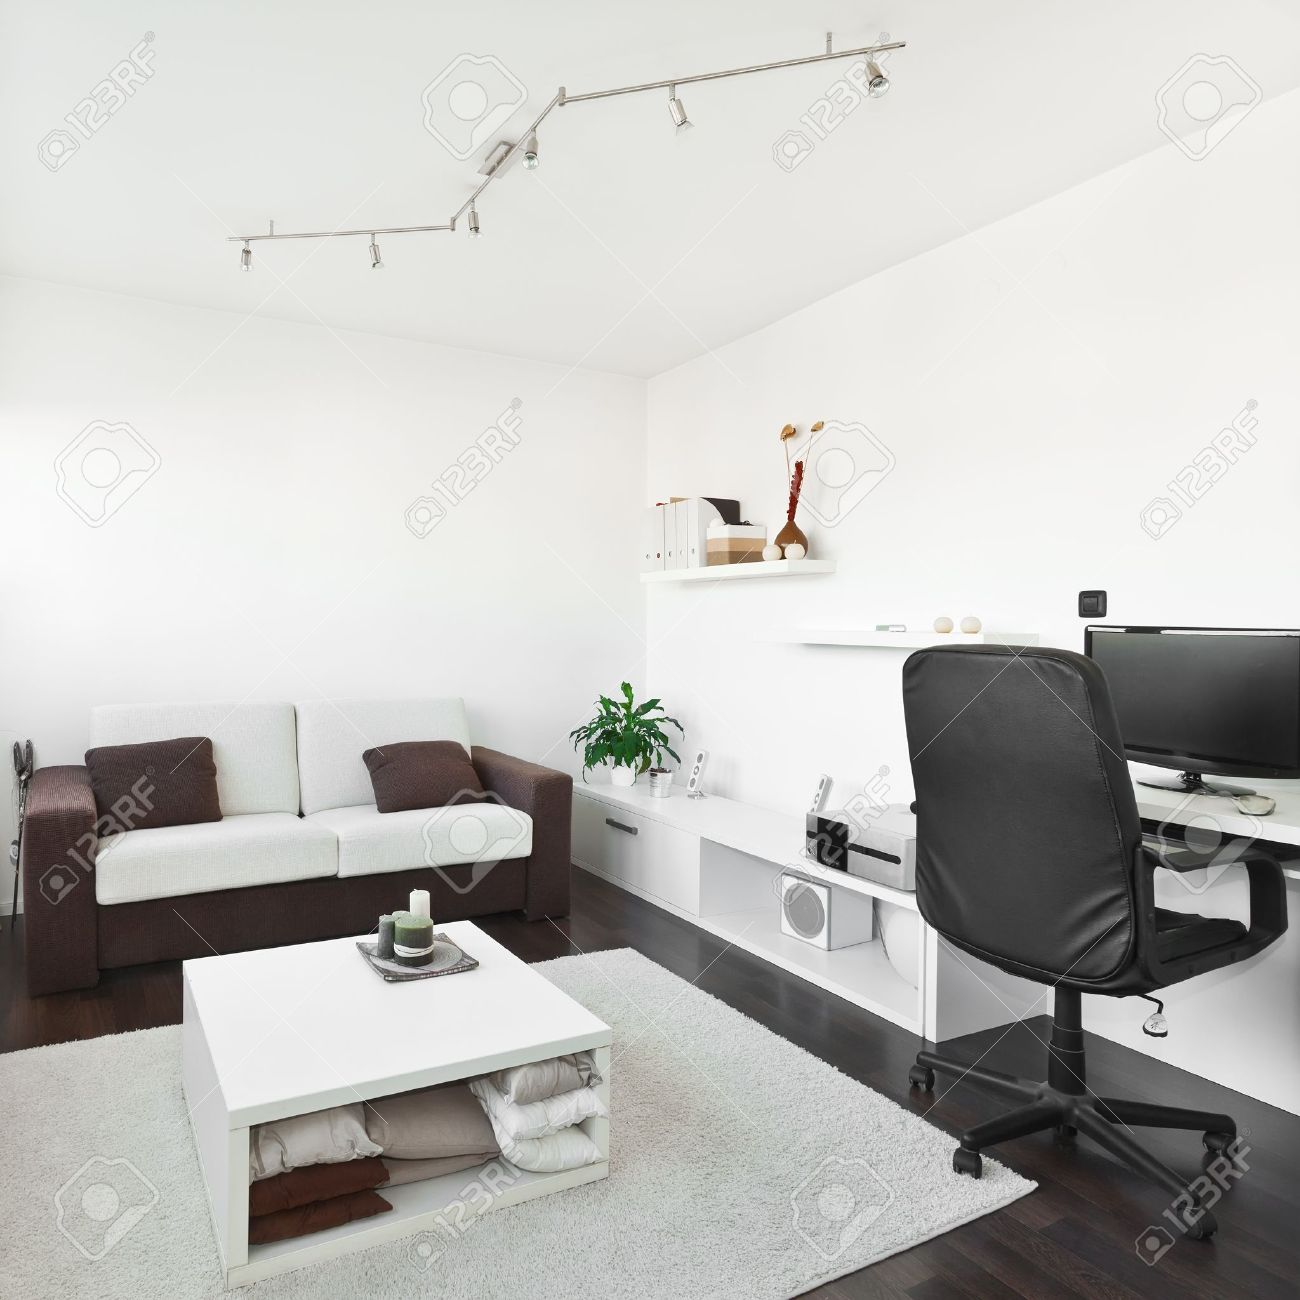 Modern Living Room With Computer Desk And The Screen, Sofa And ...